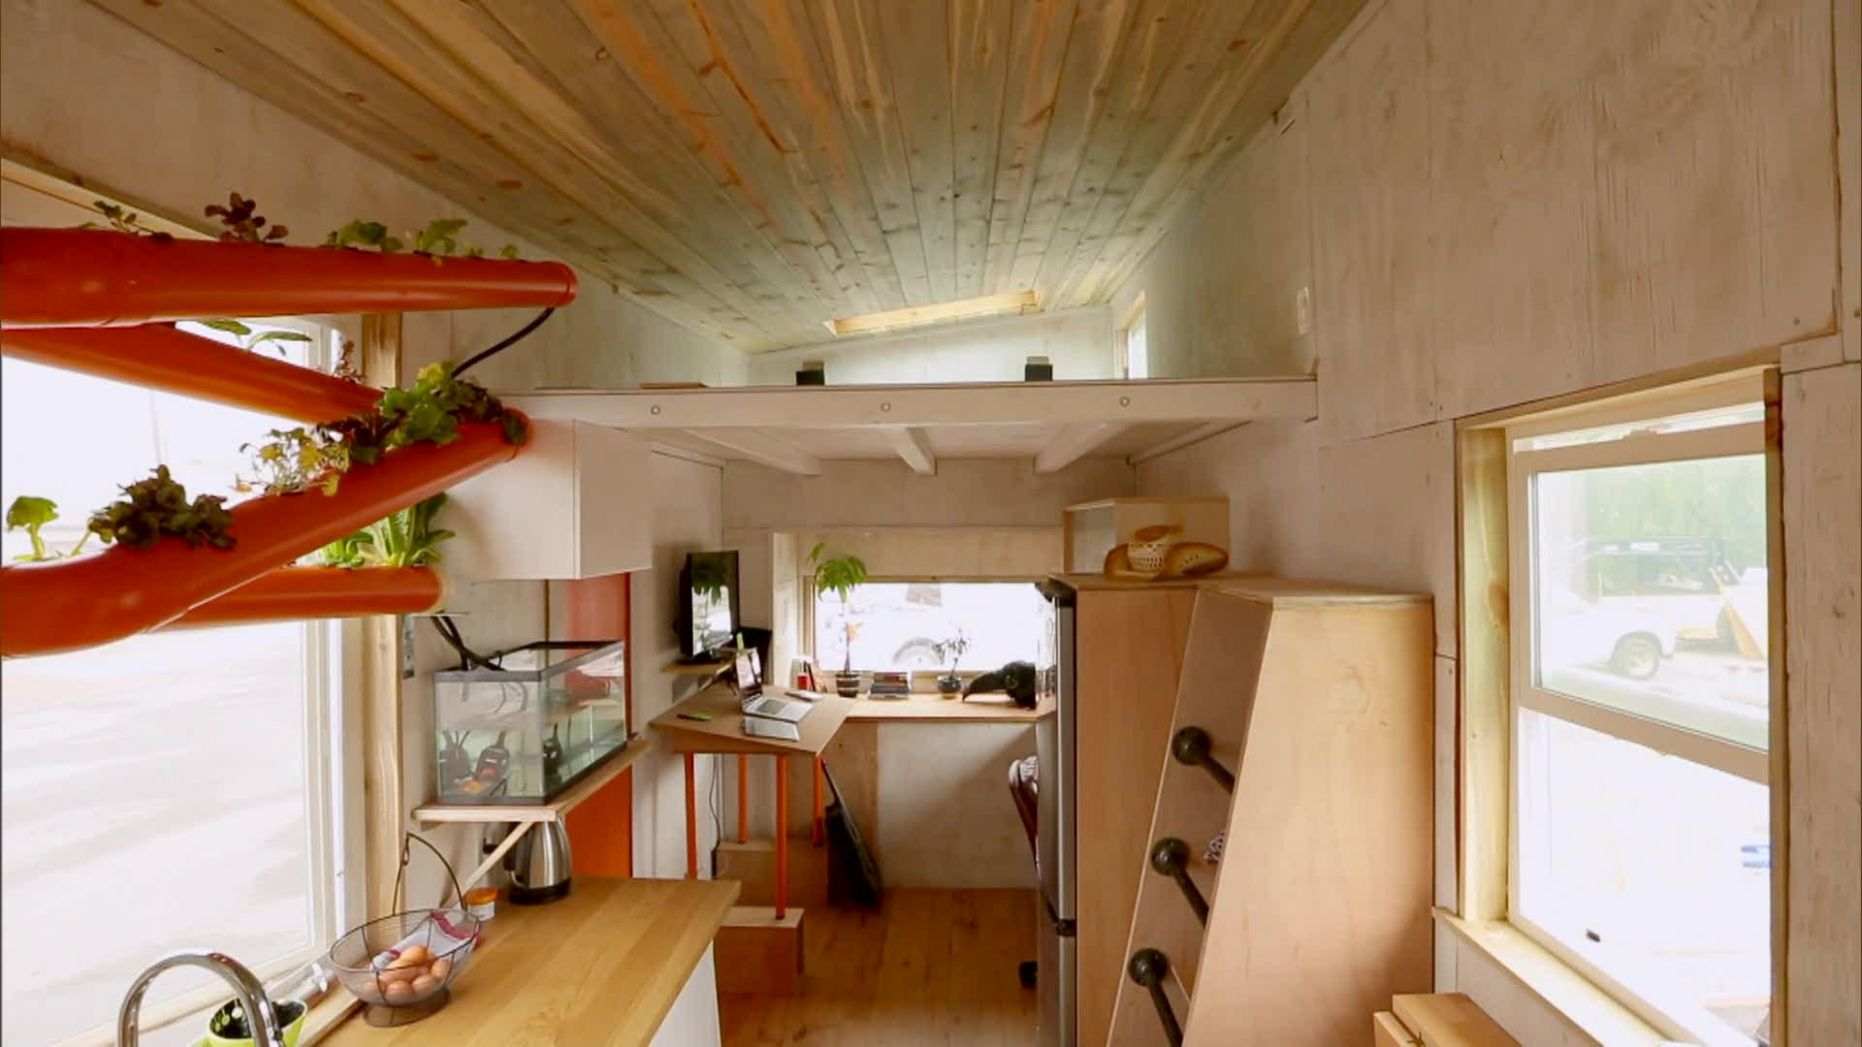 9 Tiny Homes With Features You Won't Believe | Tiny House Living ...